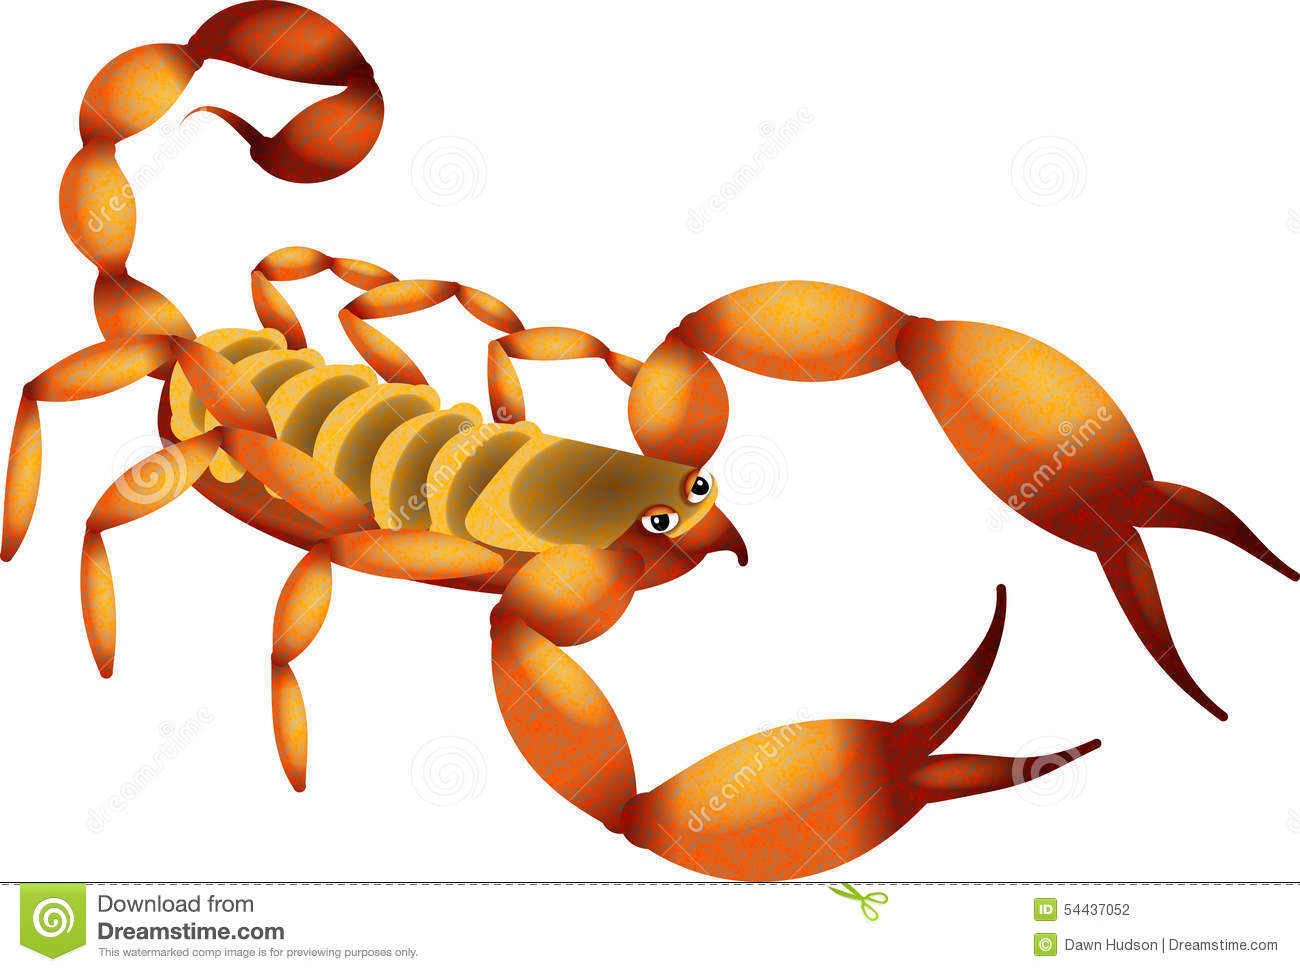 Illustration of a cartoon desert scorpion isolated on white.